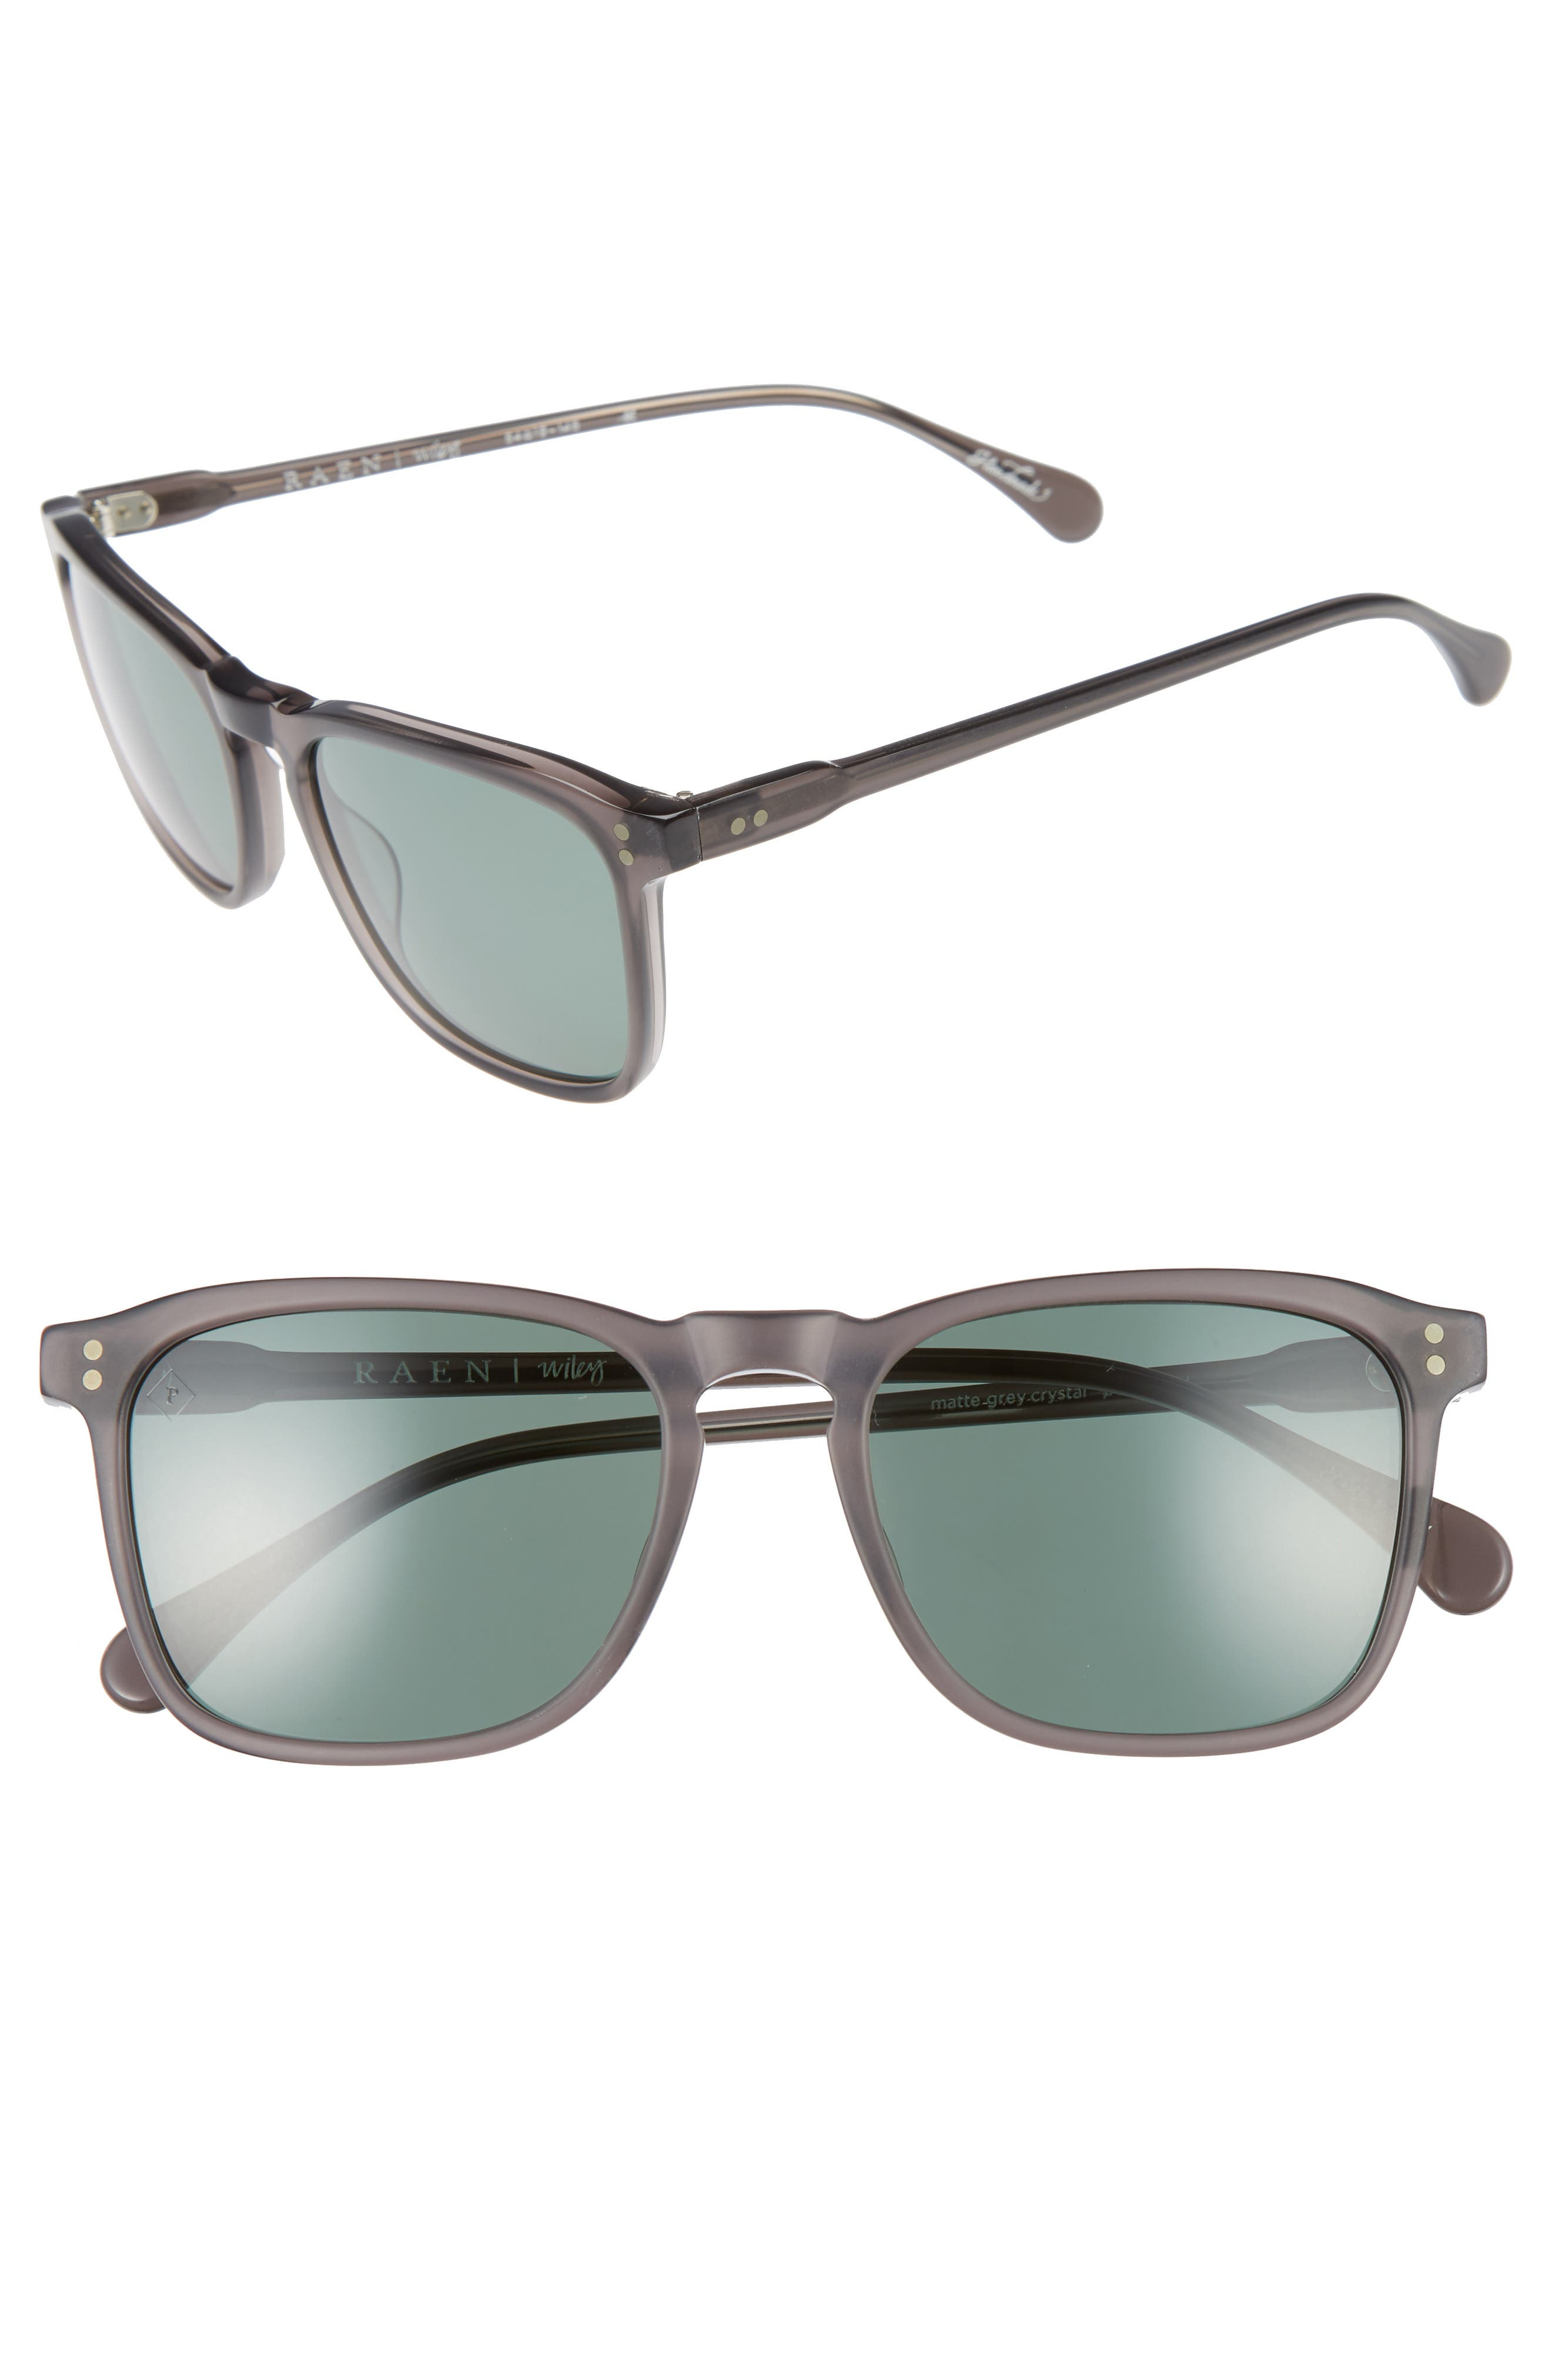 Wiley 54mm Sunglasses,                             Alternate thumbnail 2, color,                             020